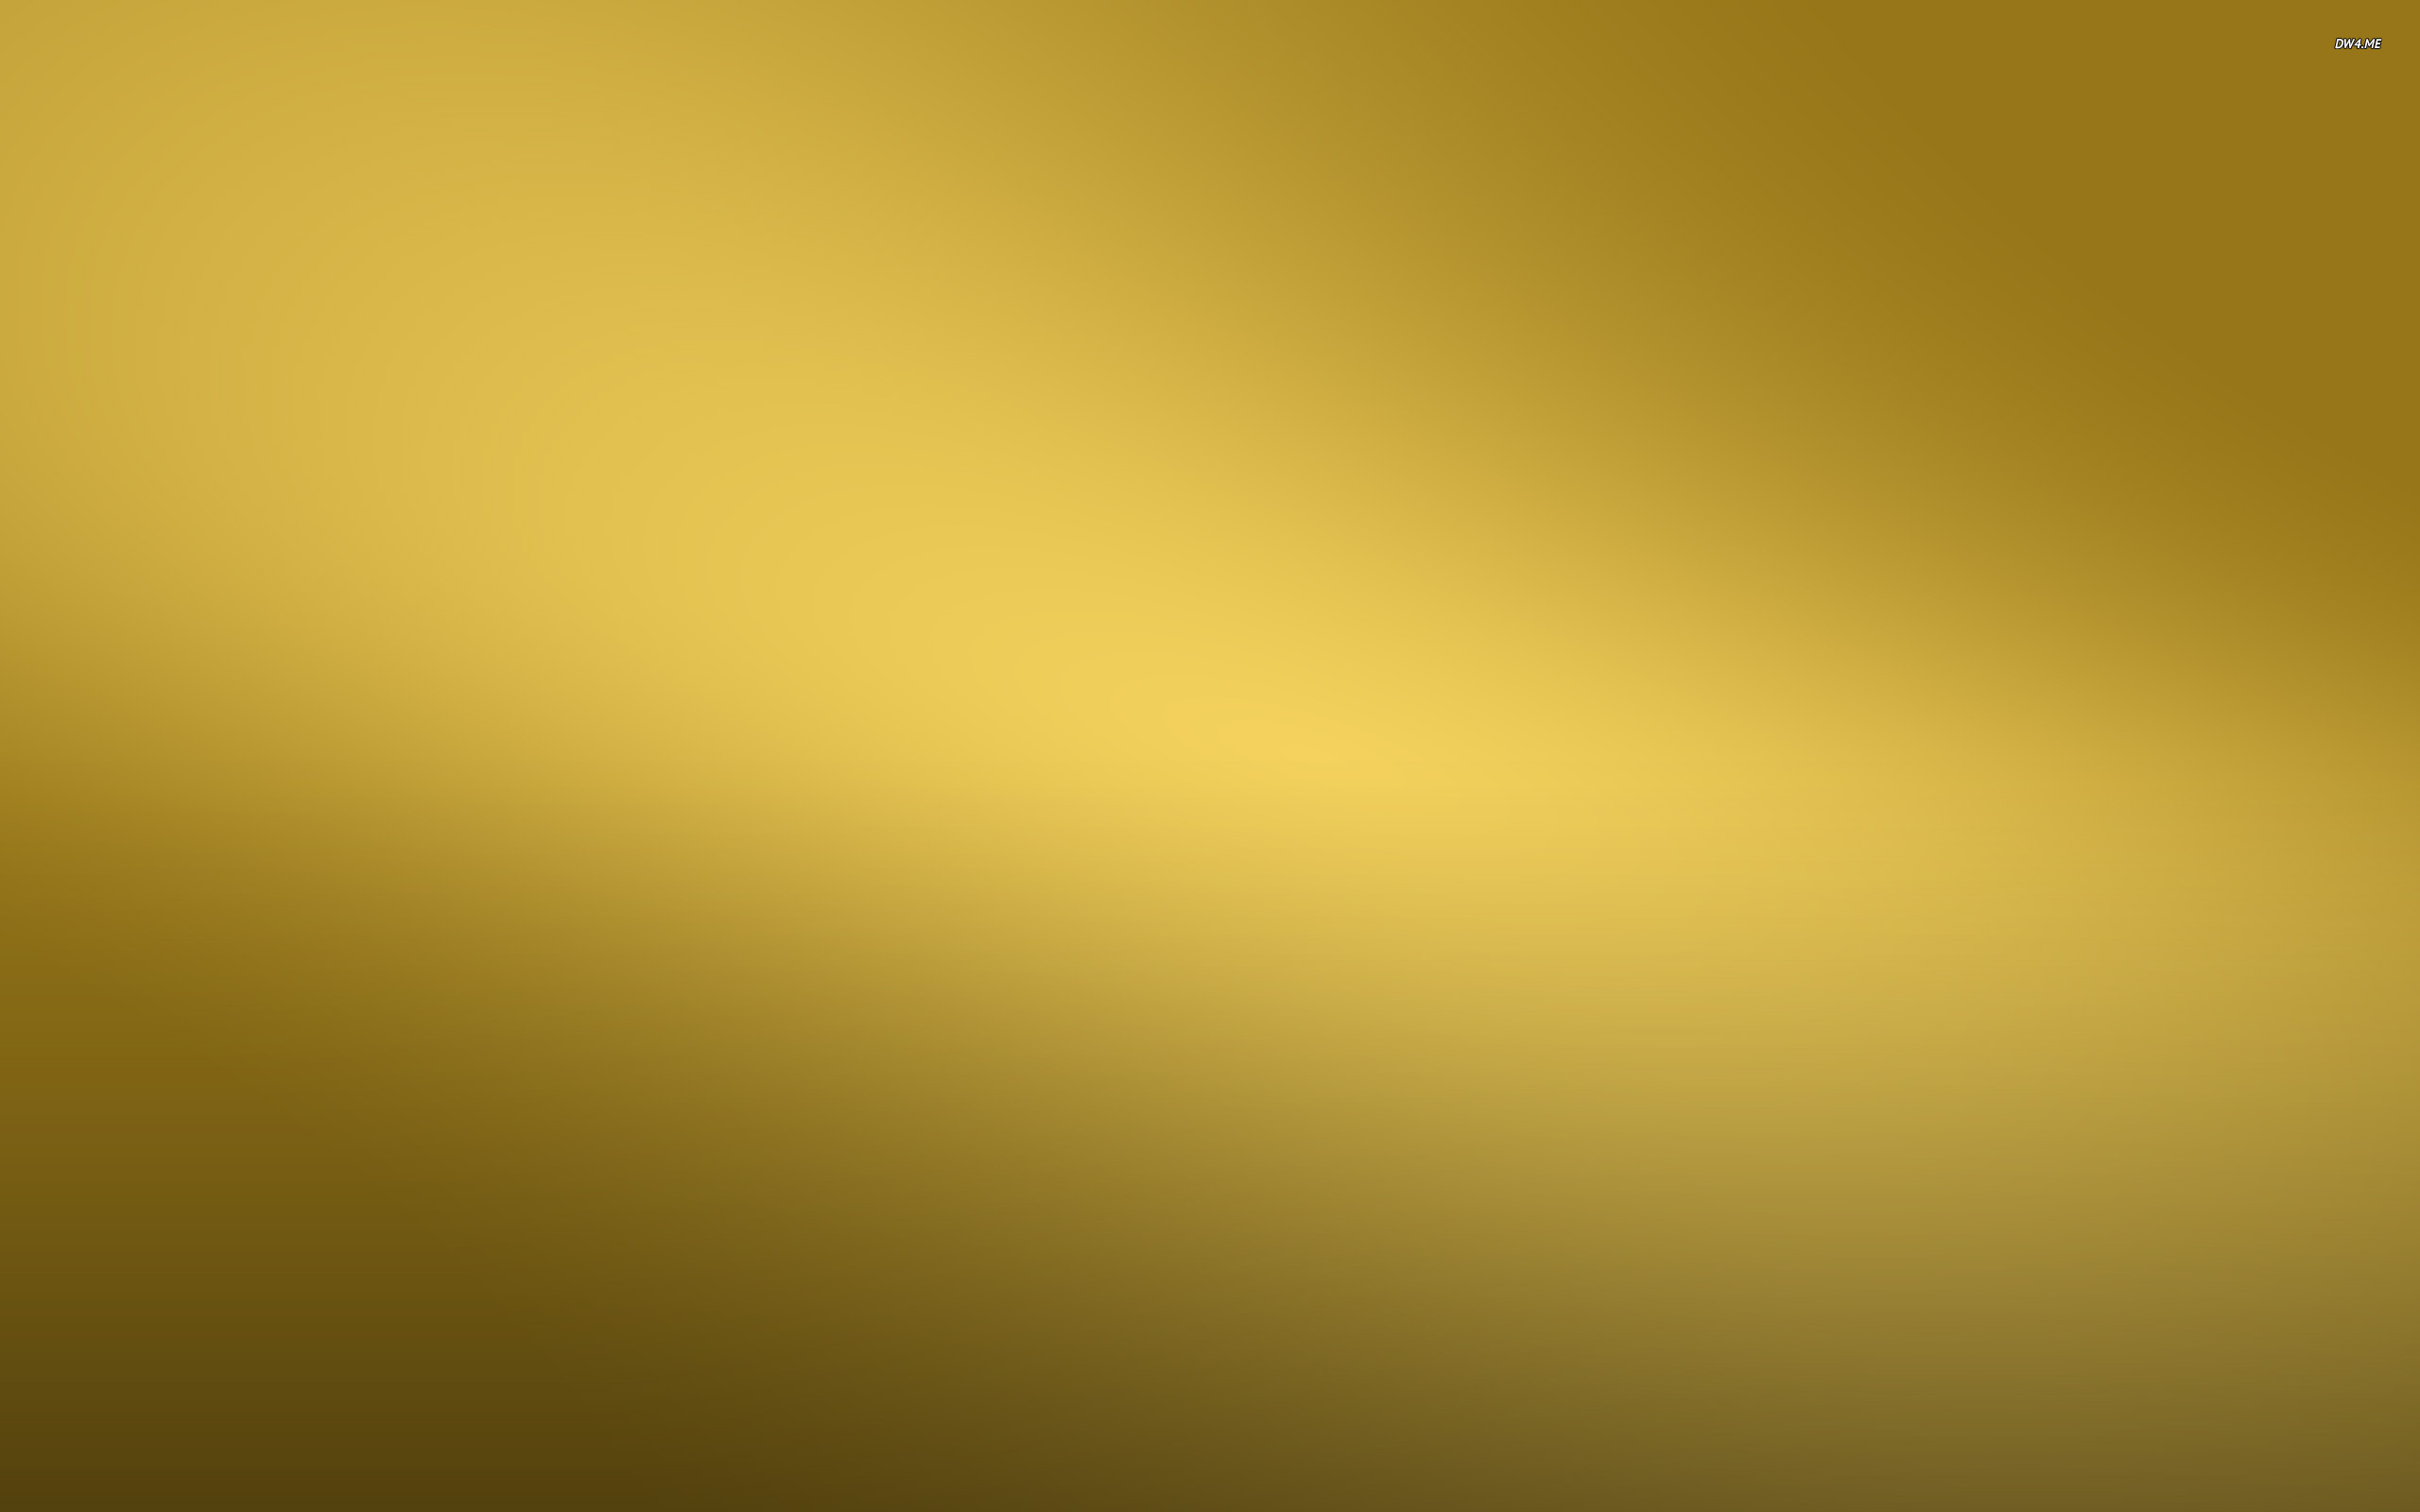 Gold wallpaper   Minimalistic wallpapers   389 2560x1600